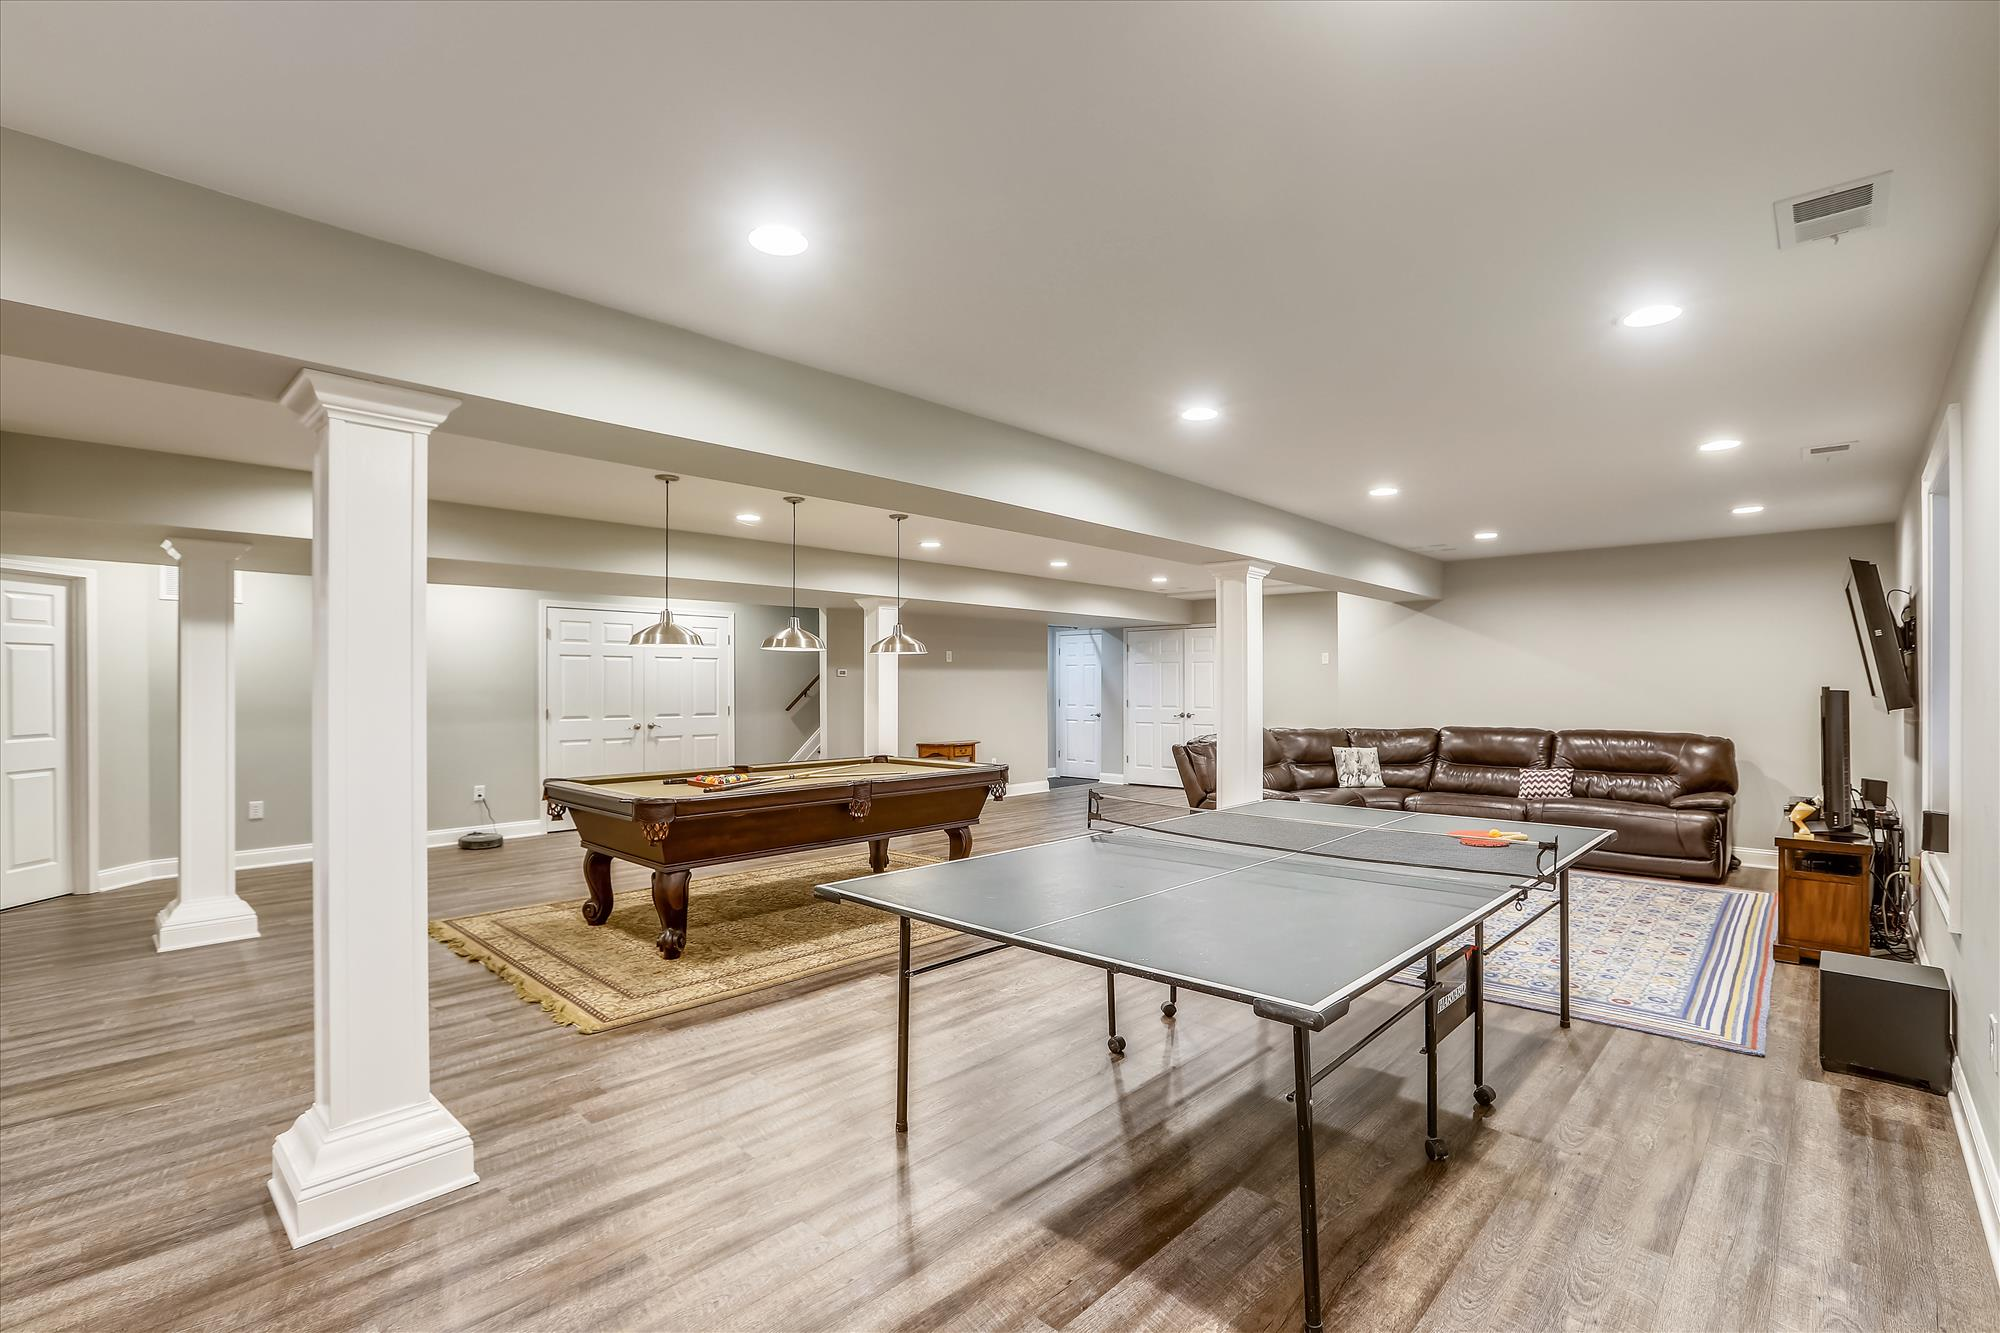 Lower Level,Recreation Room,